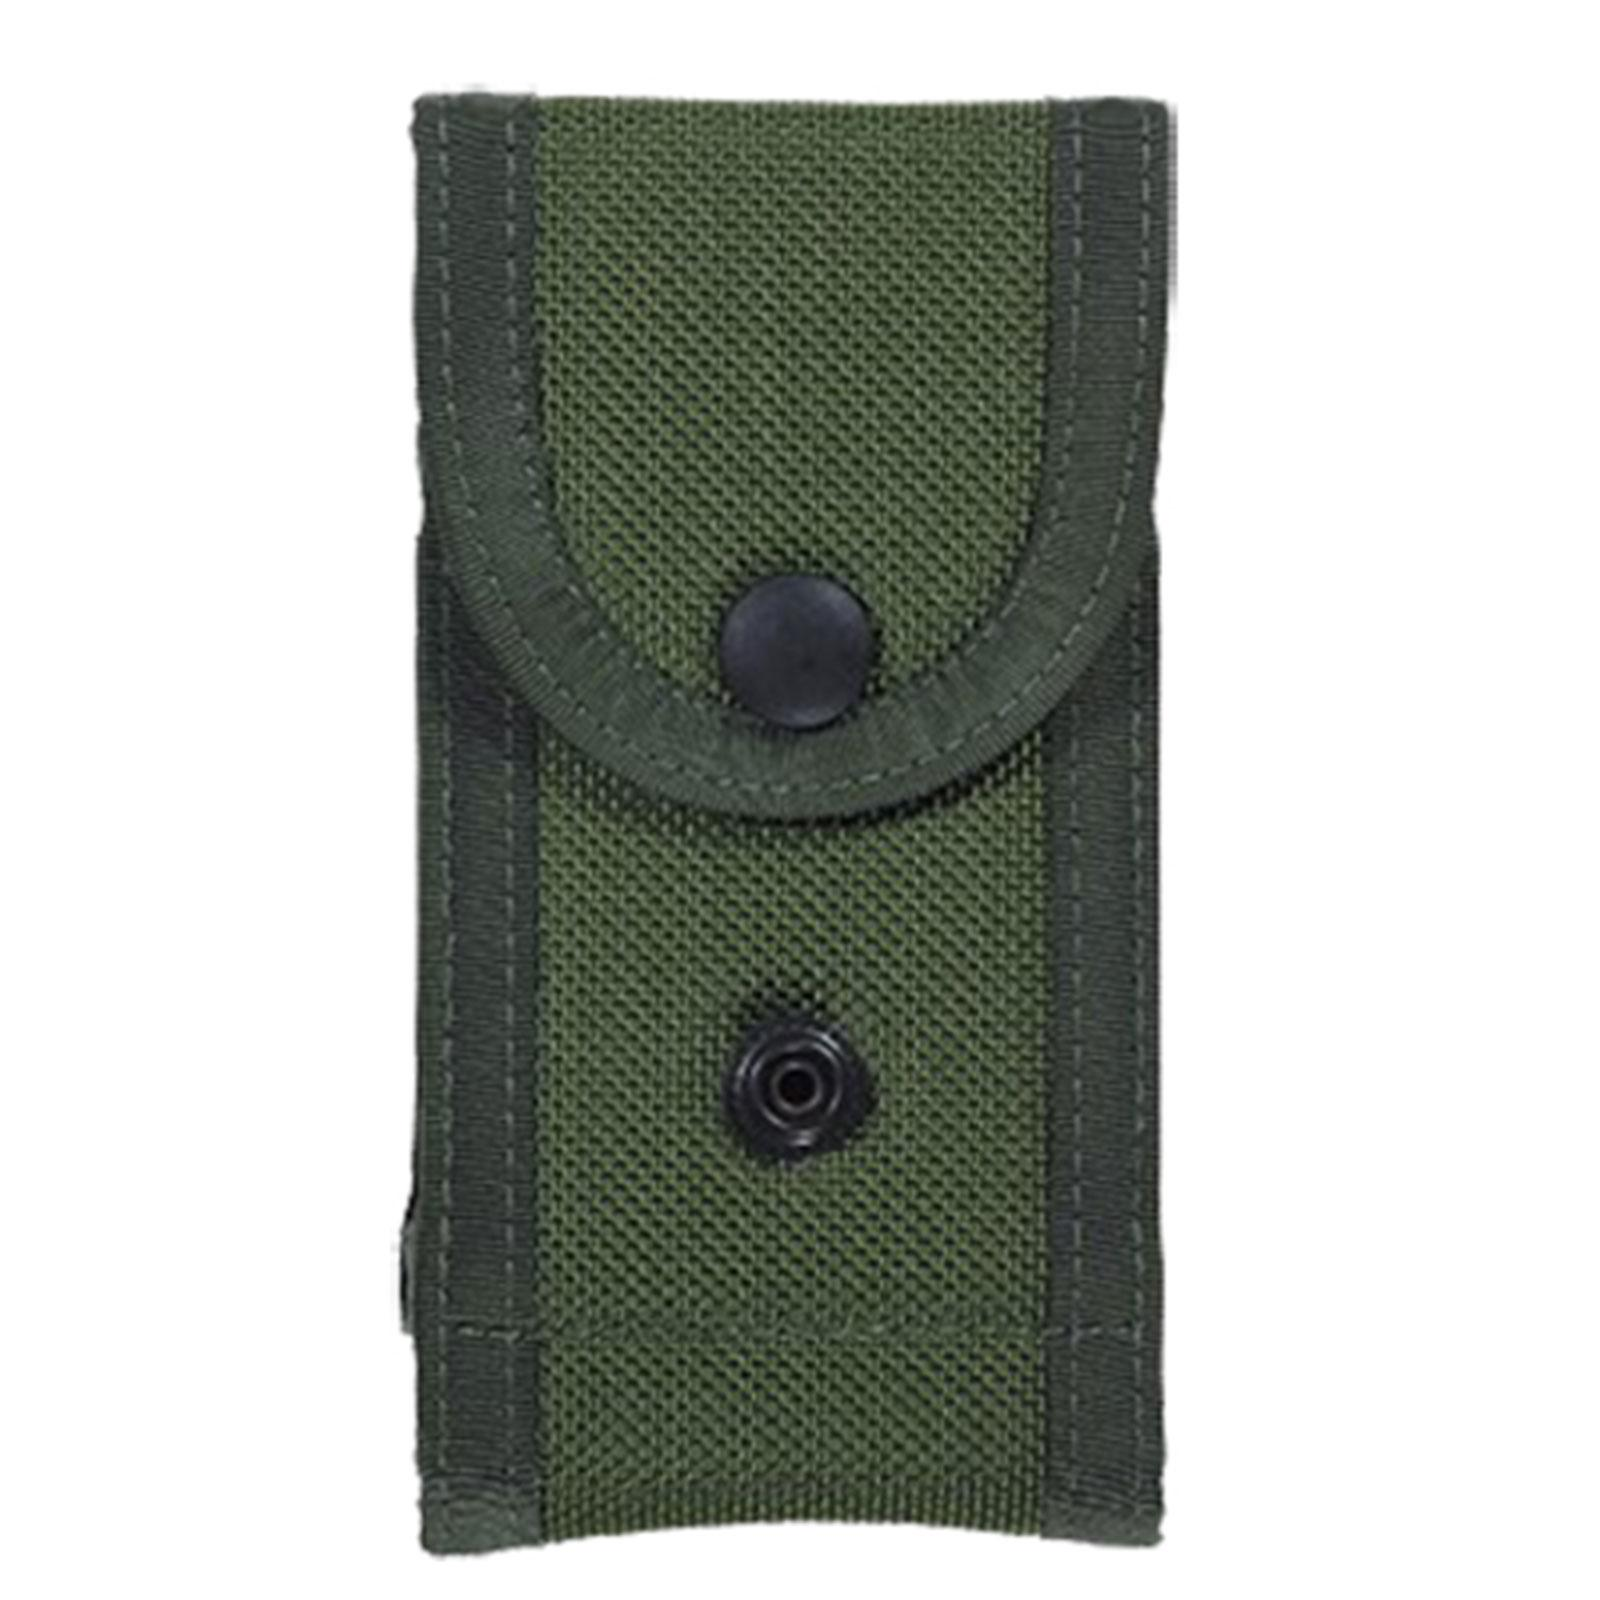 "Bianchi 17646 Military Mag Pouch, M1025, Fits 2.25"" Belts, Olive Drab, Accumold by BIANCHI INTERNATIONAL"